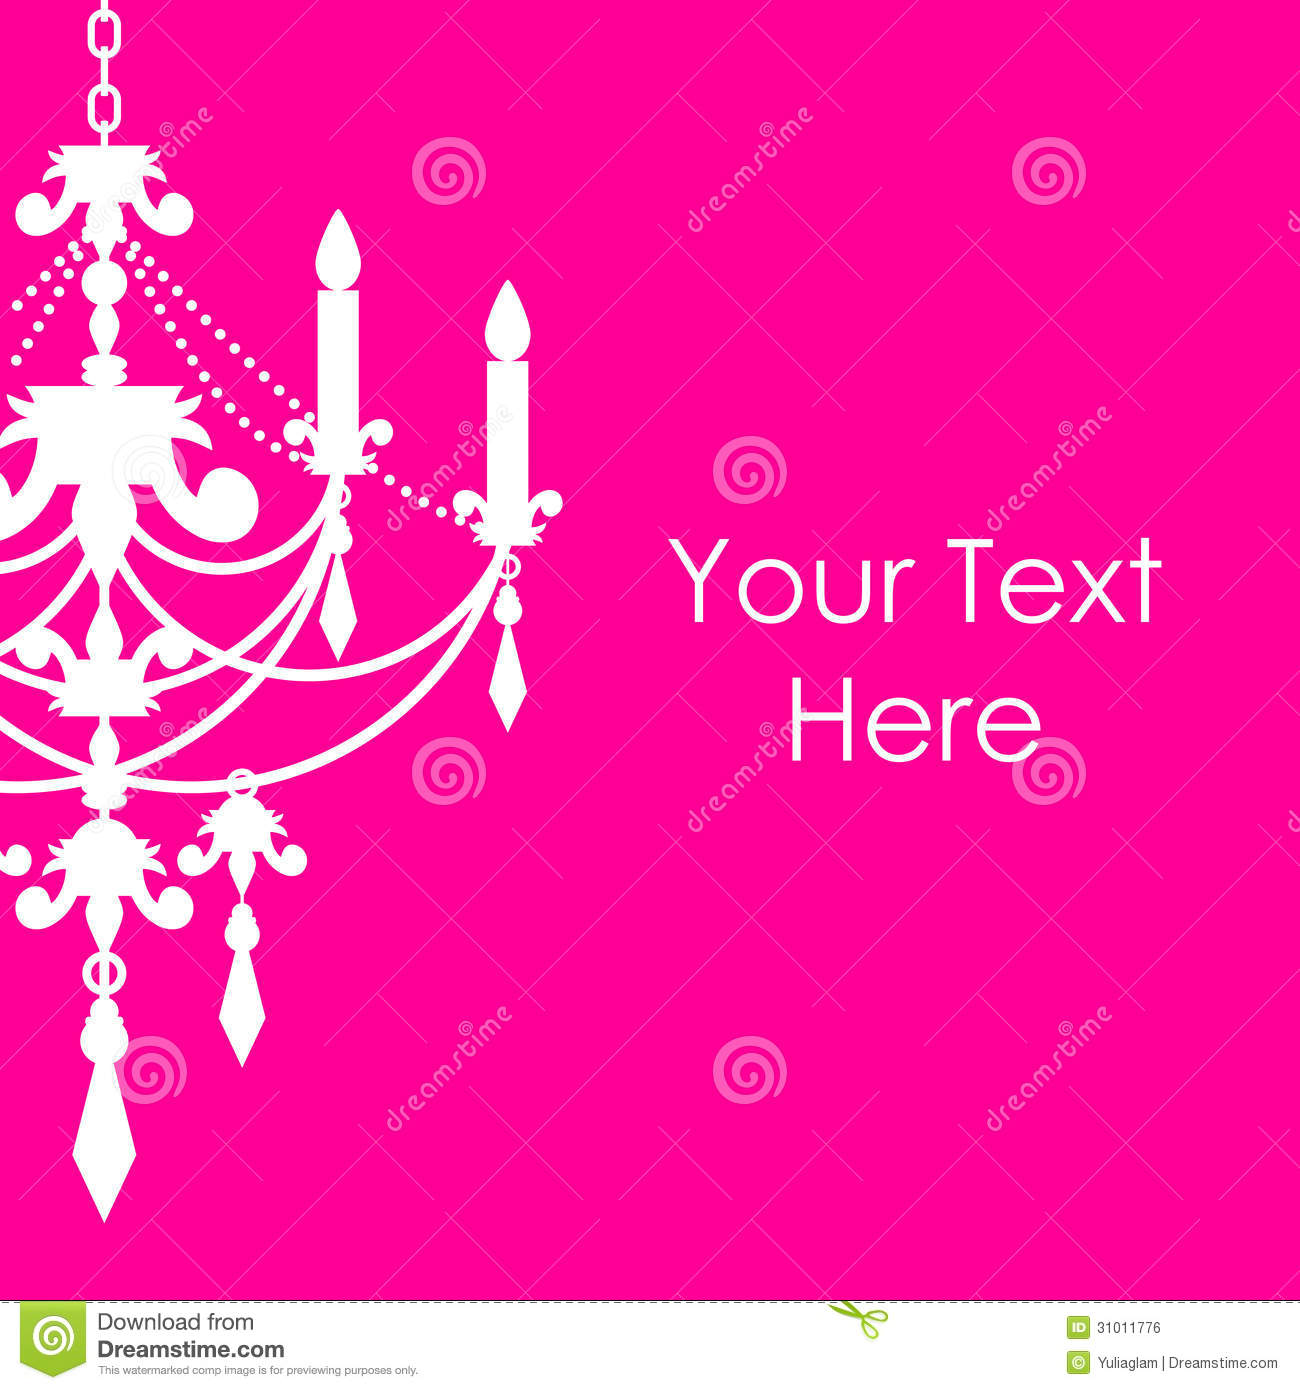 Enchanting Pink Chandelier Graphic Charming Home Decoration Ideas.